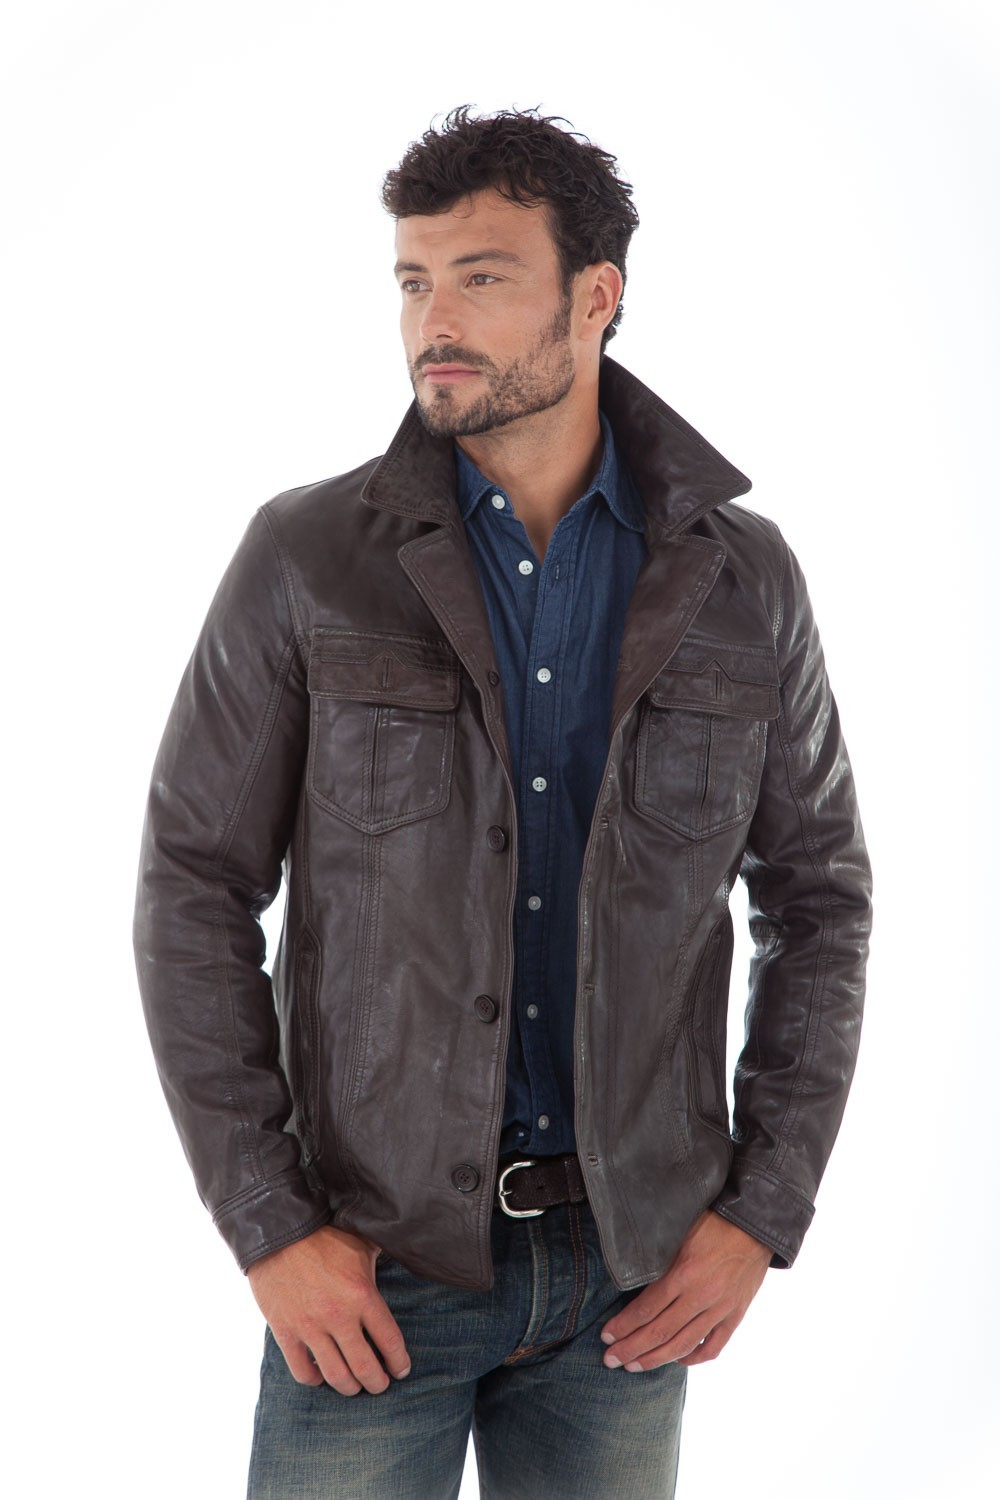 veste en cuir d 39 agneau marron homme daytona hutch cesare nori depuis 1955. Black Bedroom Furniture Sets. Home Design Ideas